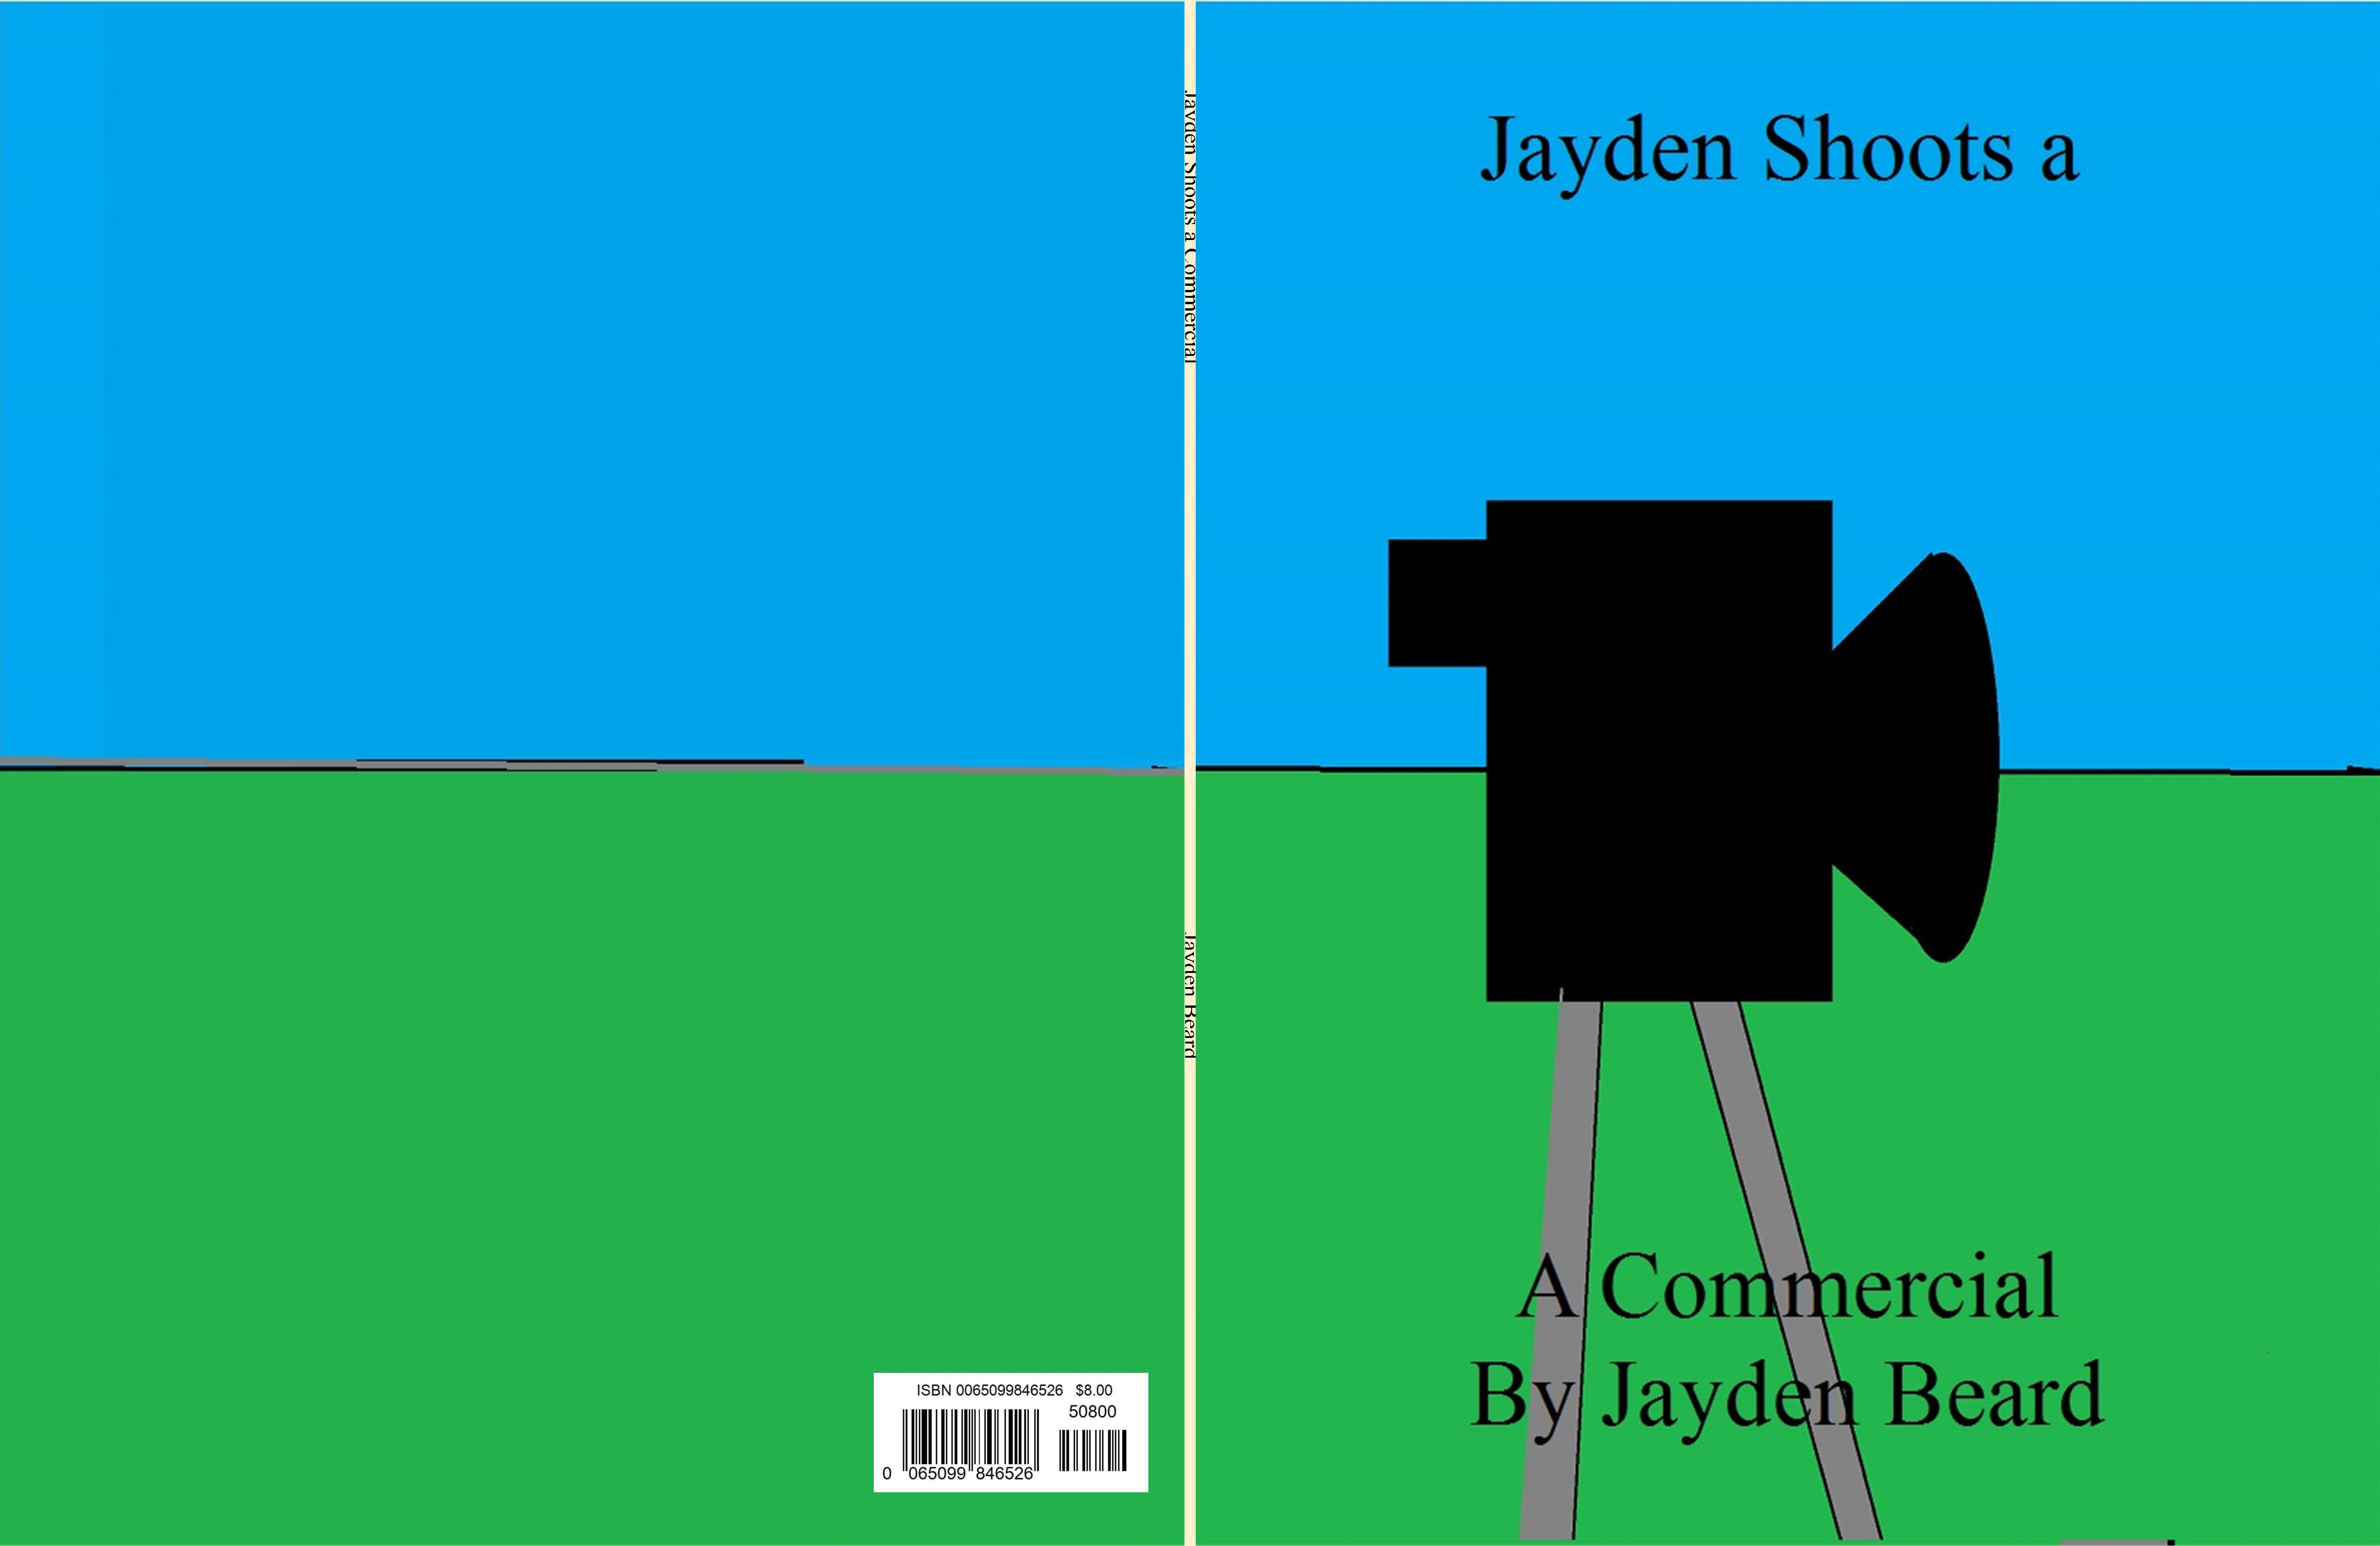 Jayden Shoots a Commercial cover image